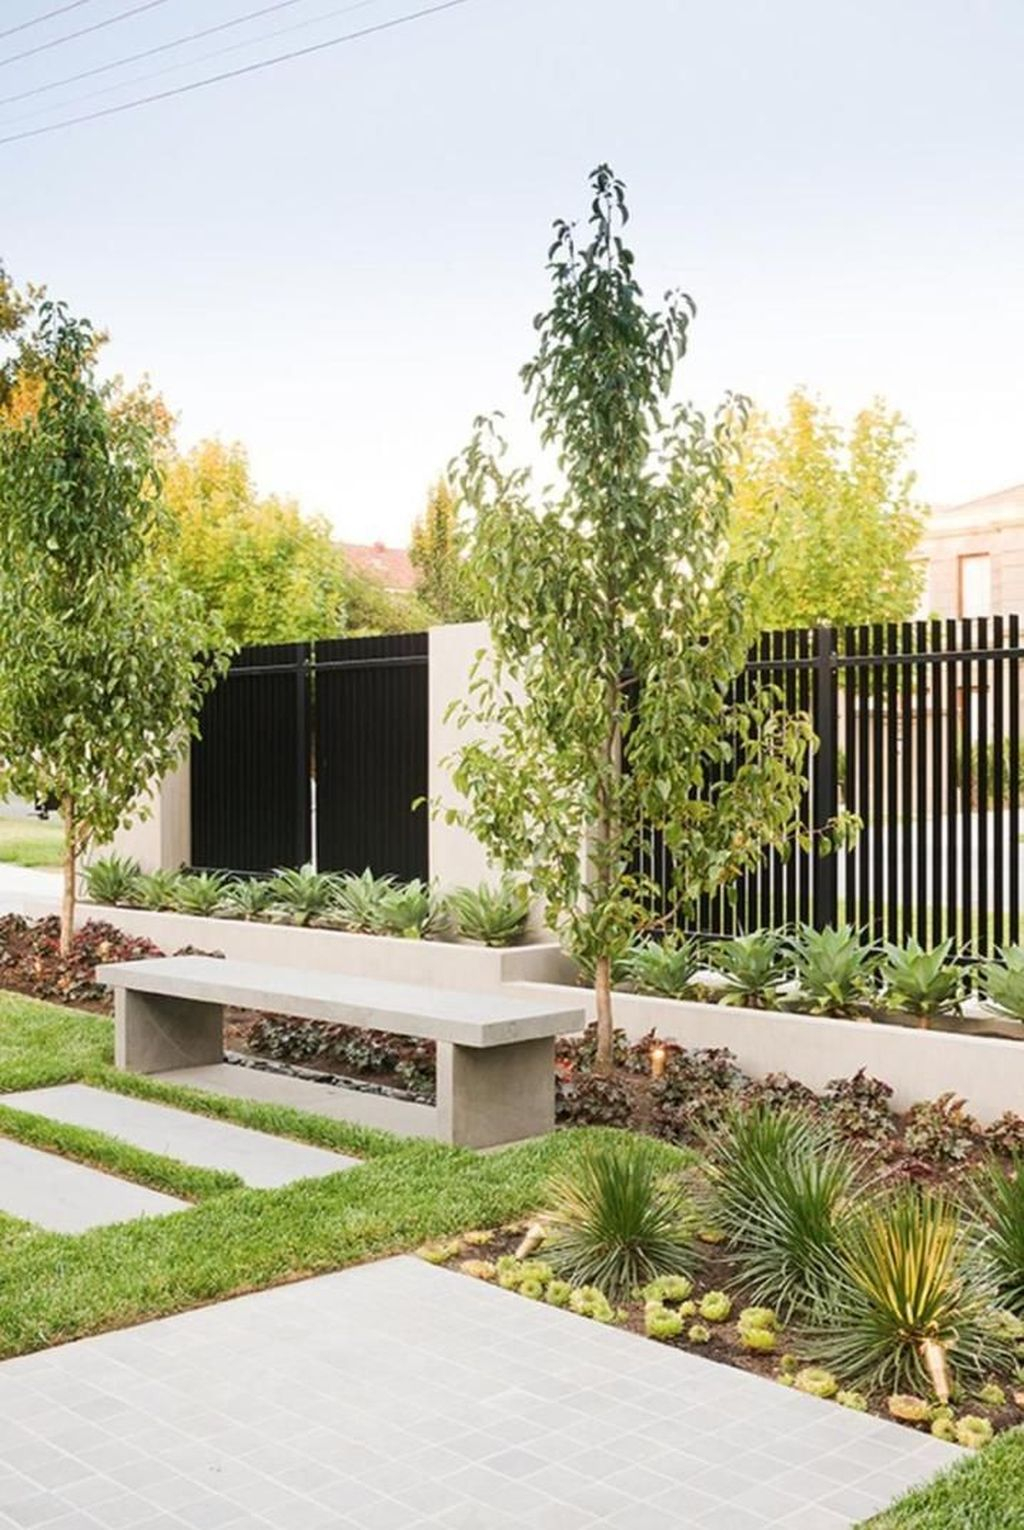 36 Relaxing Front Yard Fence Remodel Ideas For Your Home ... on Front Yard Renovation Ideas id=48802